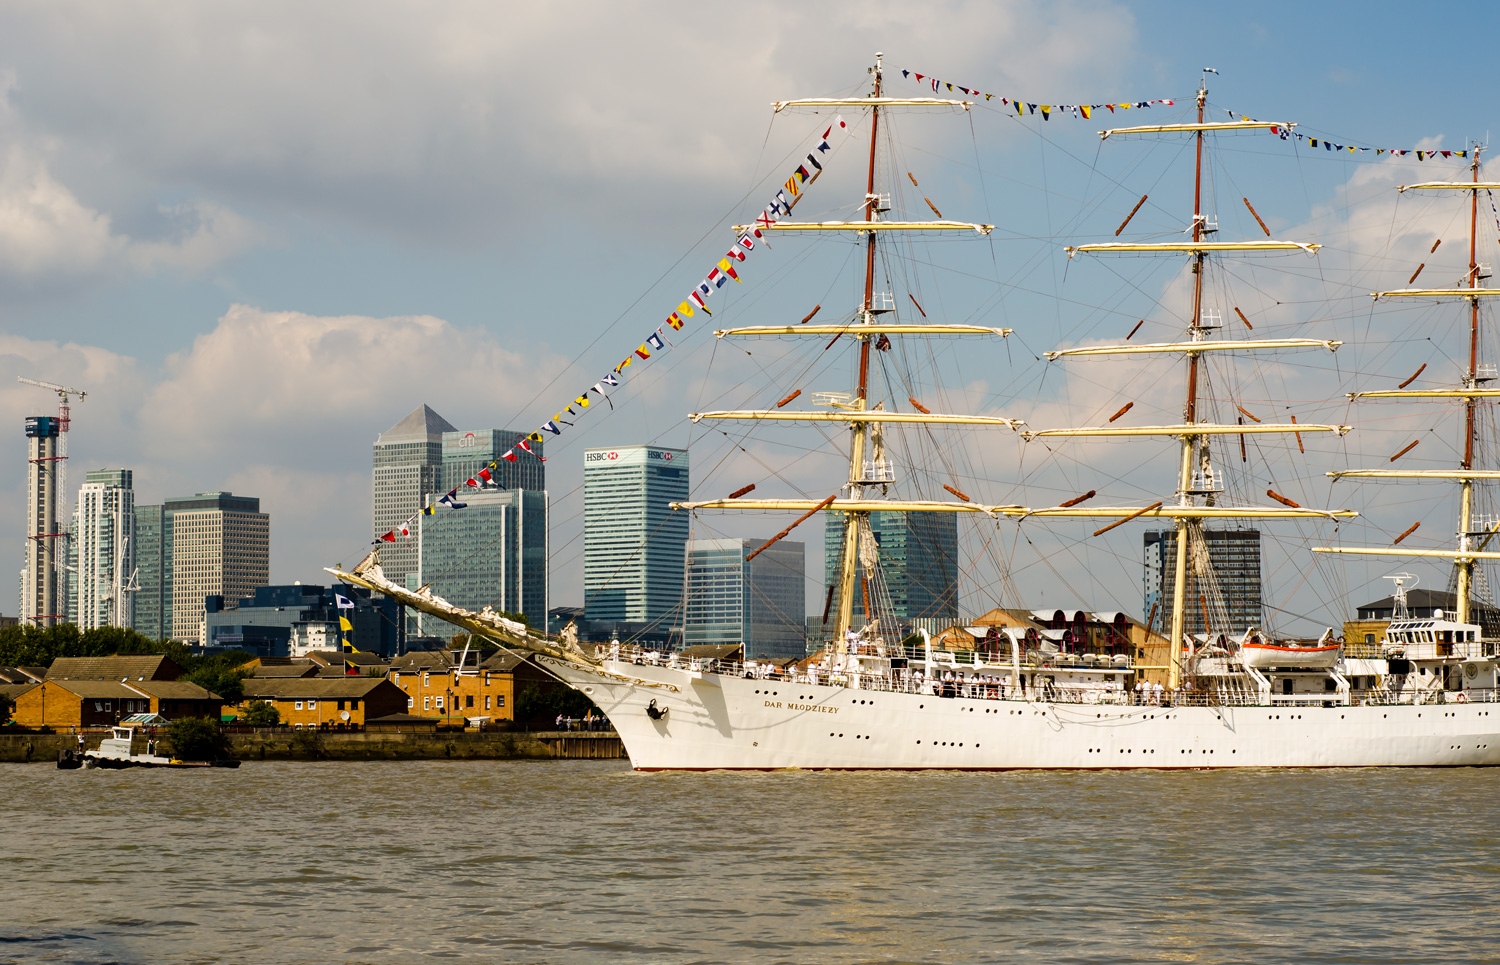 The Polish built Dar Mlodziezy sailing down the Thames and passing by Canary Wharf in London